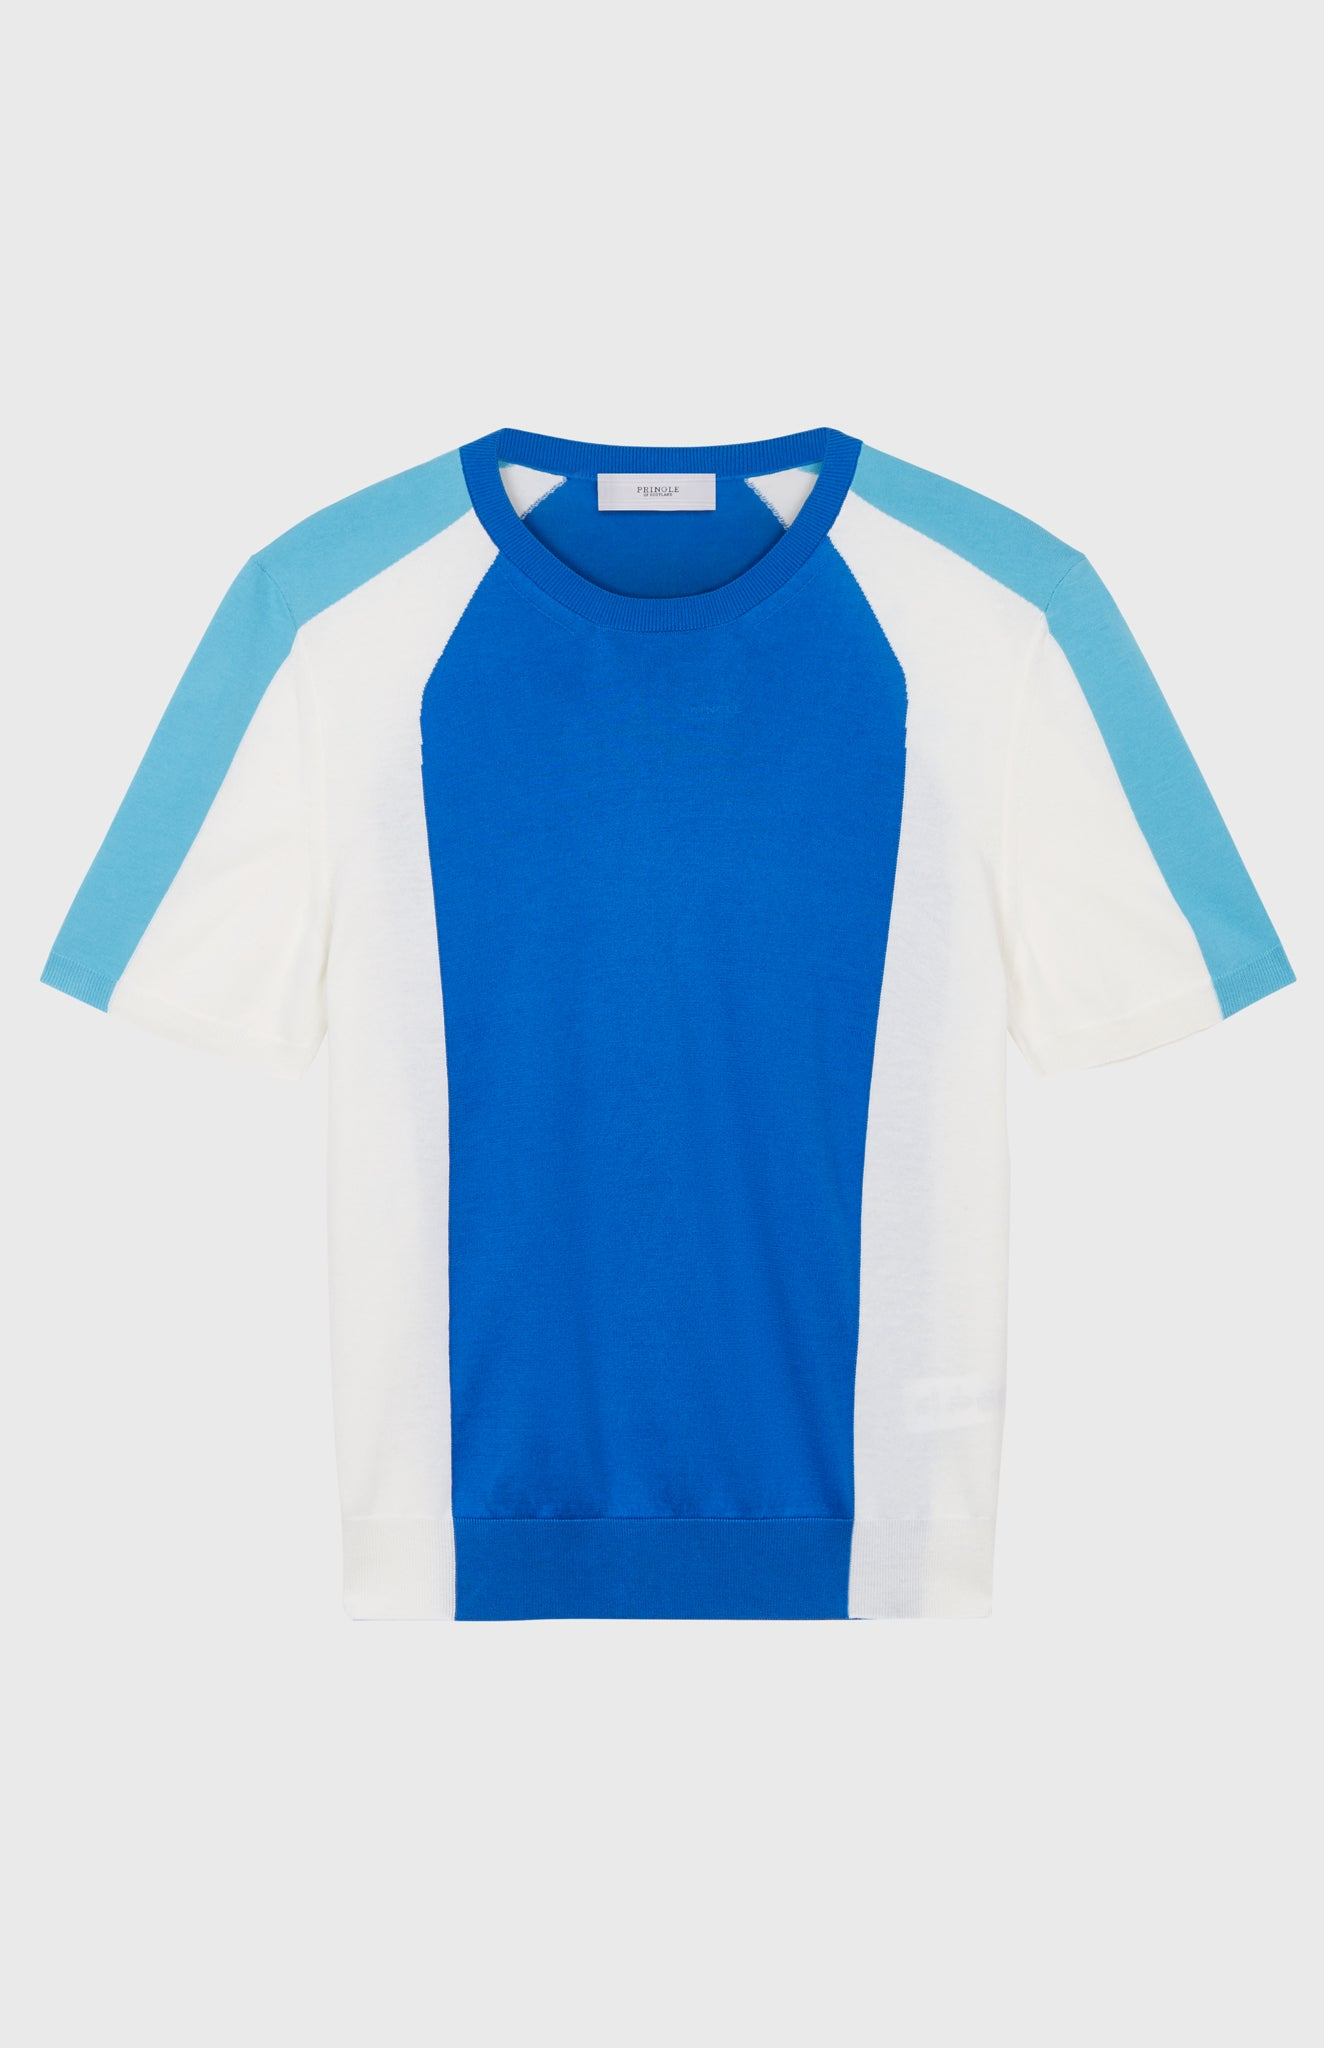 Colour Block Short Sleeved Jersey In Cobalt Blue/Optic White